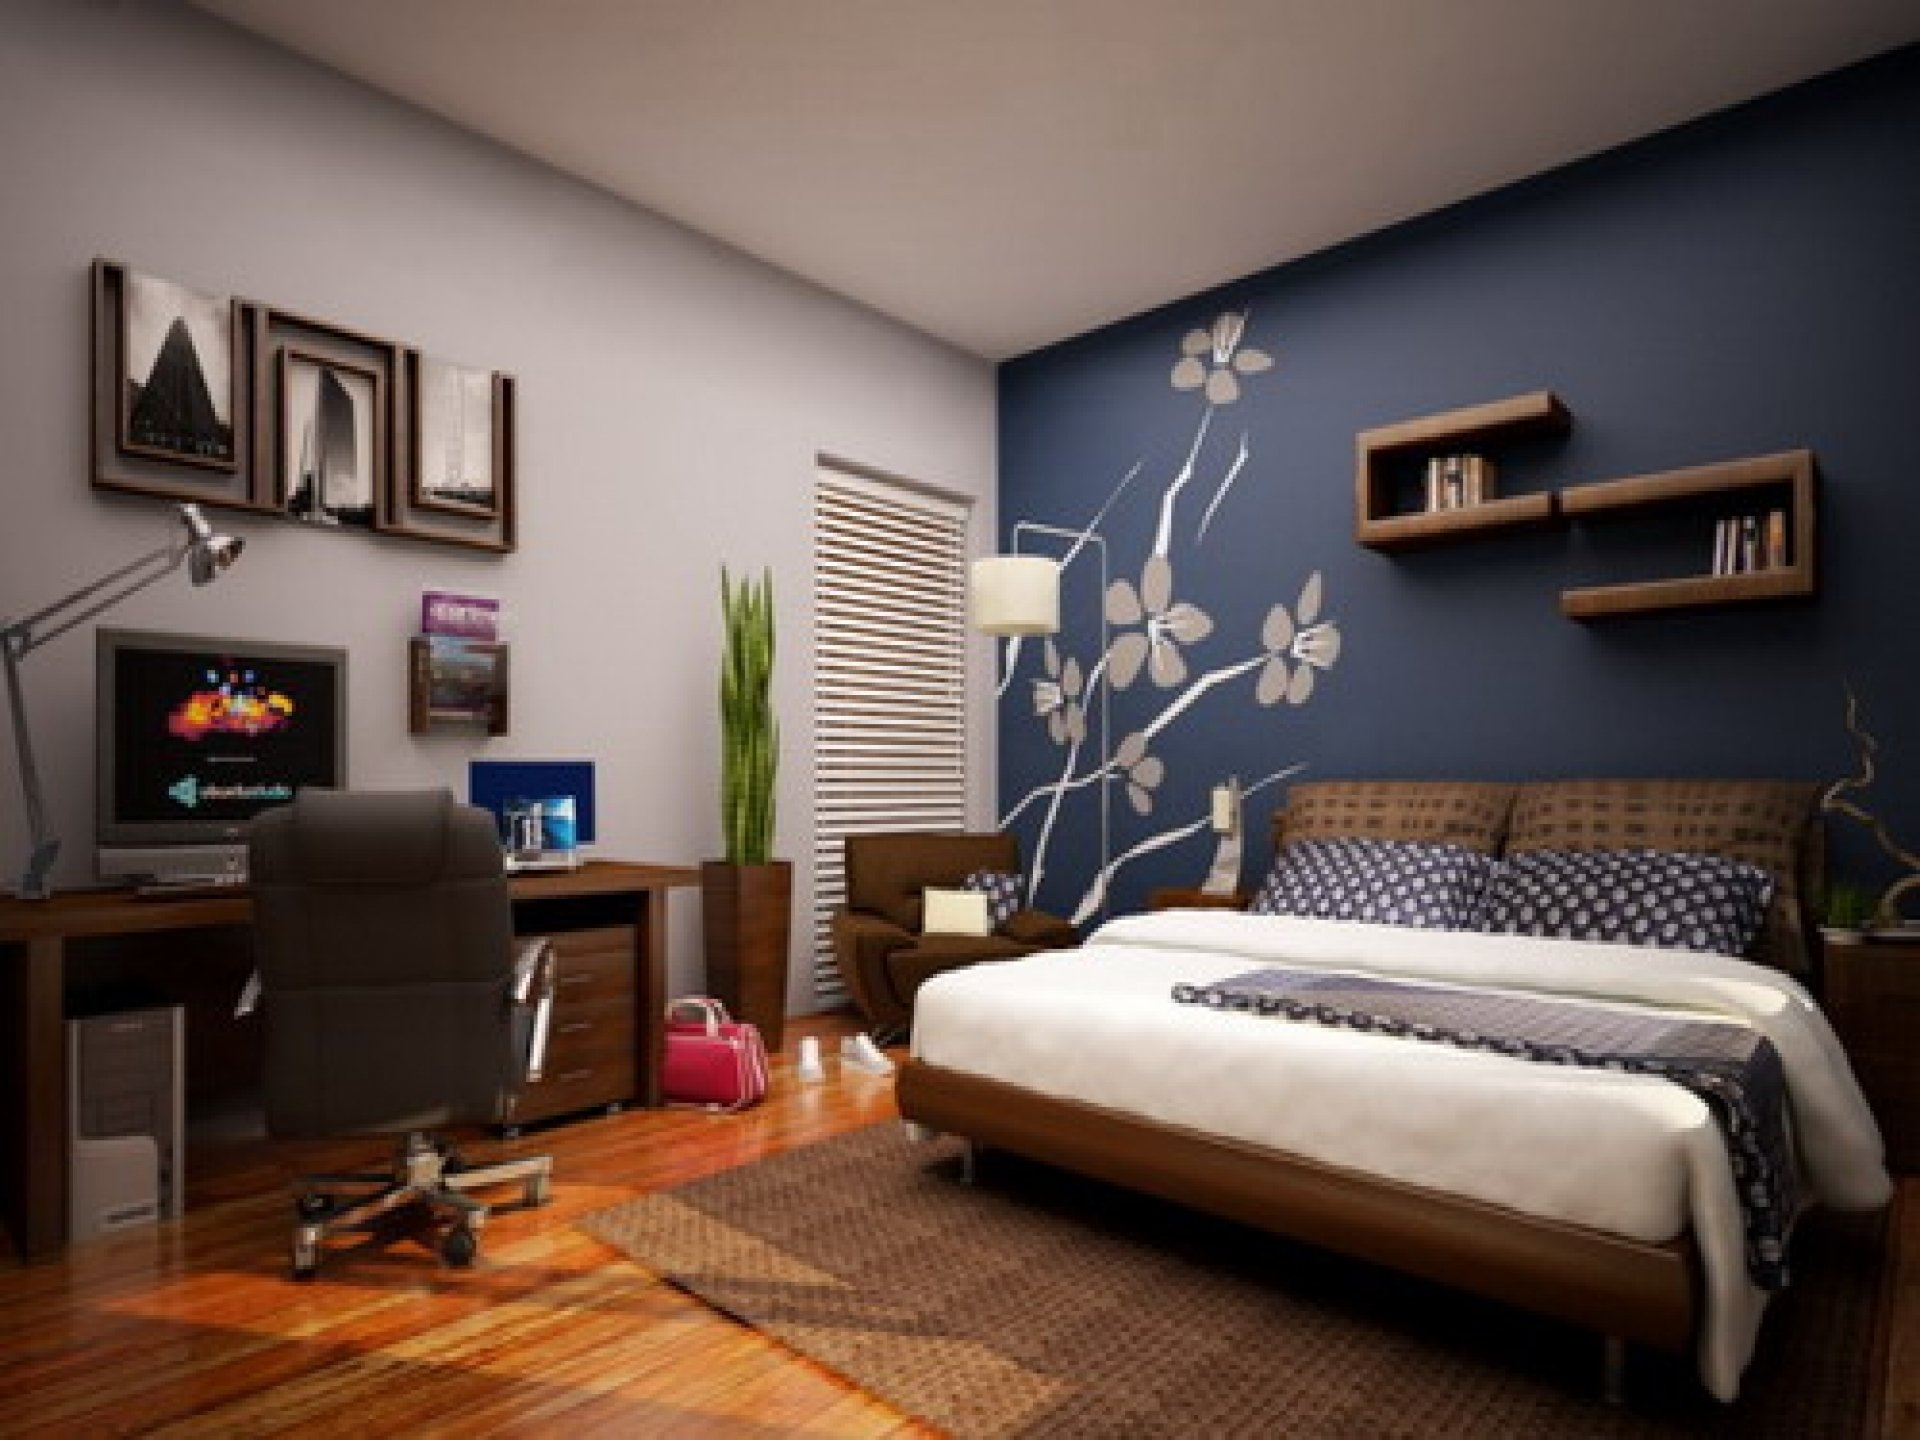 10 Cute Ideas For Painting A Room wall paint colors for bedroom full size of design magnificent best 2020